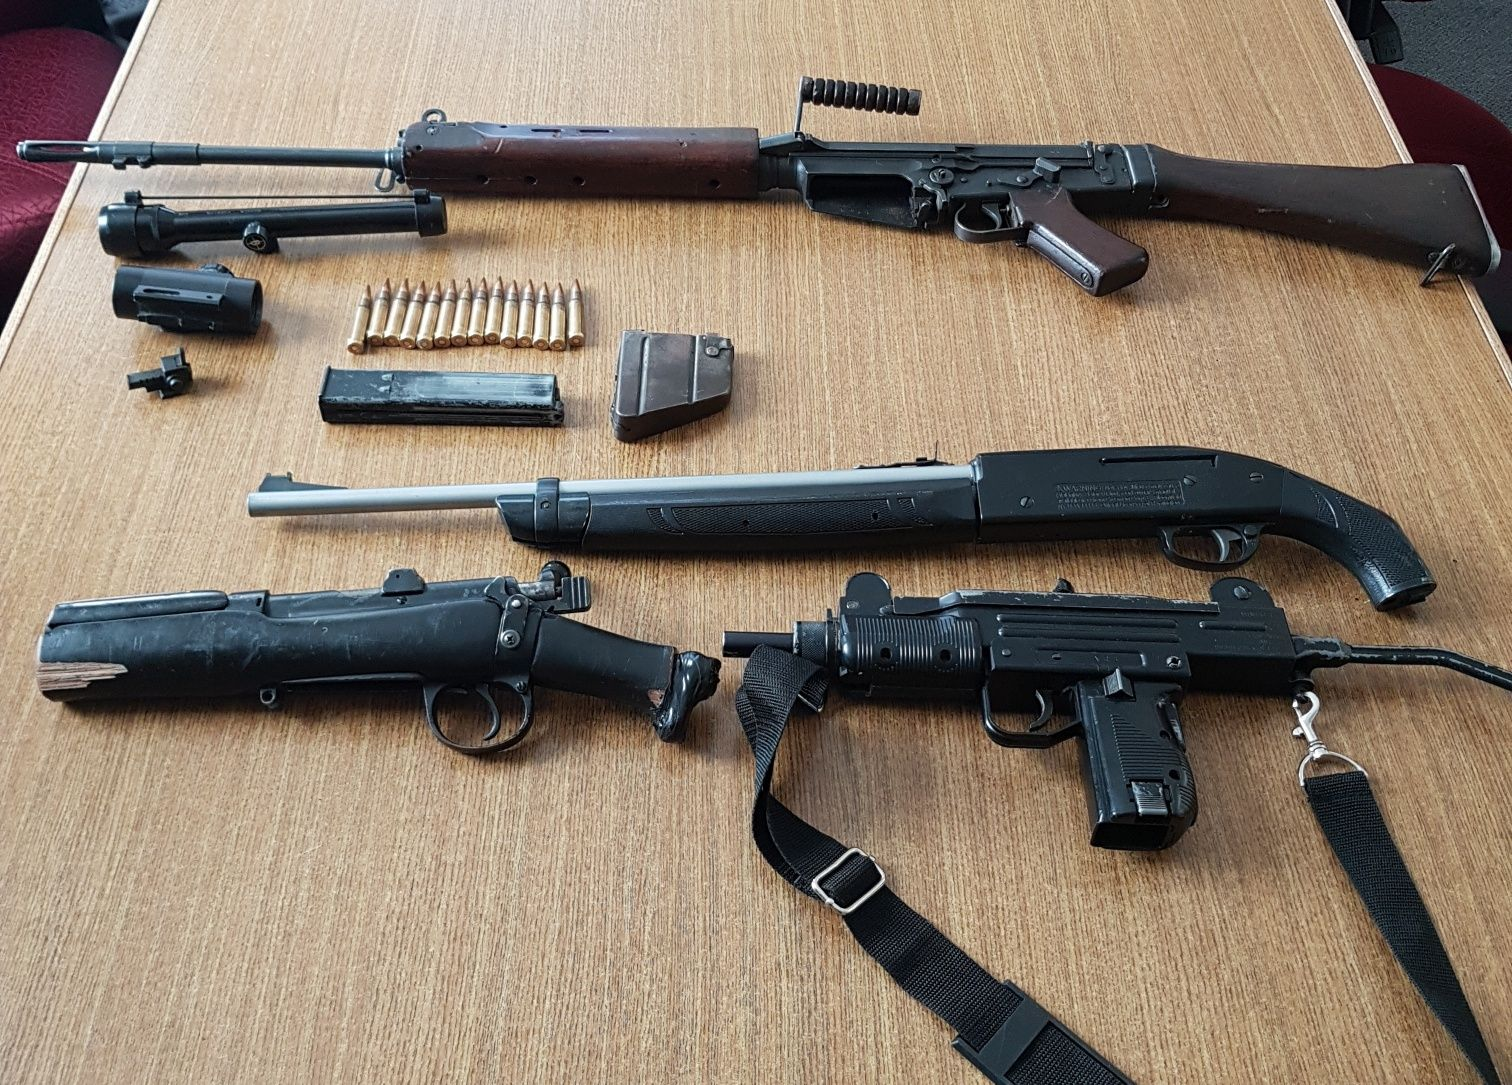 Seized Firearms, Ammo and pellet guns